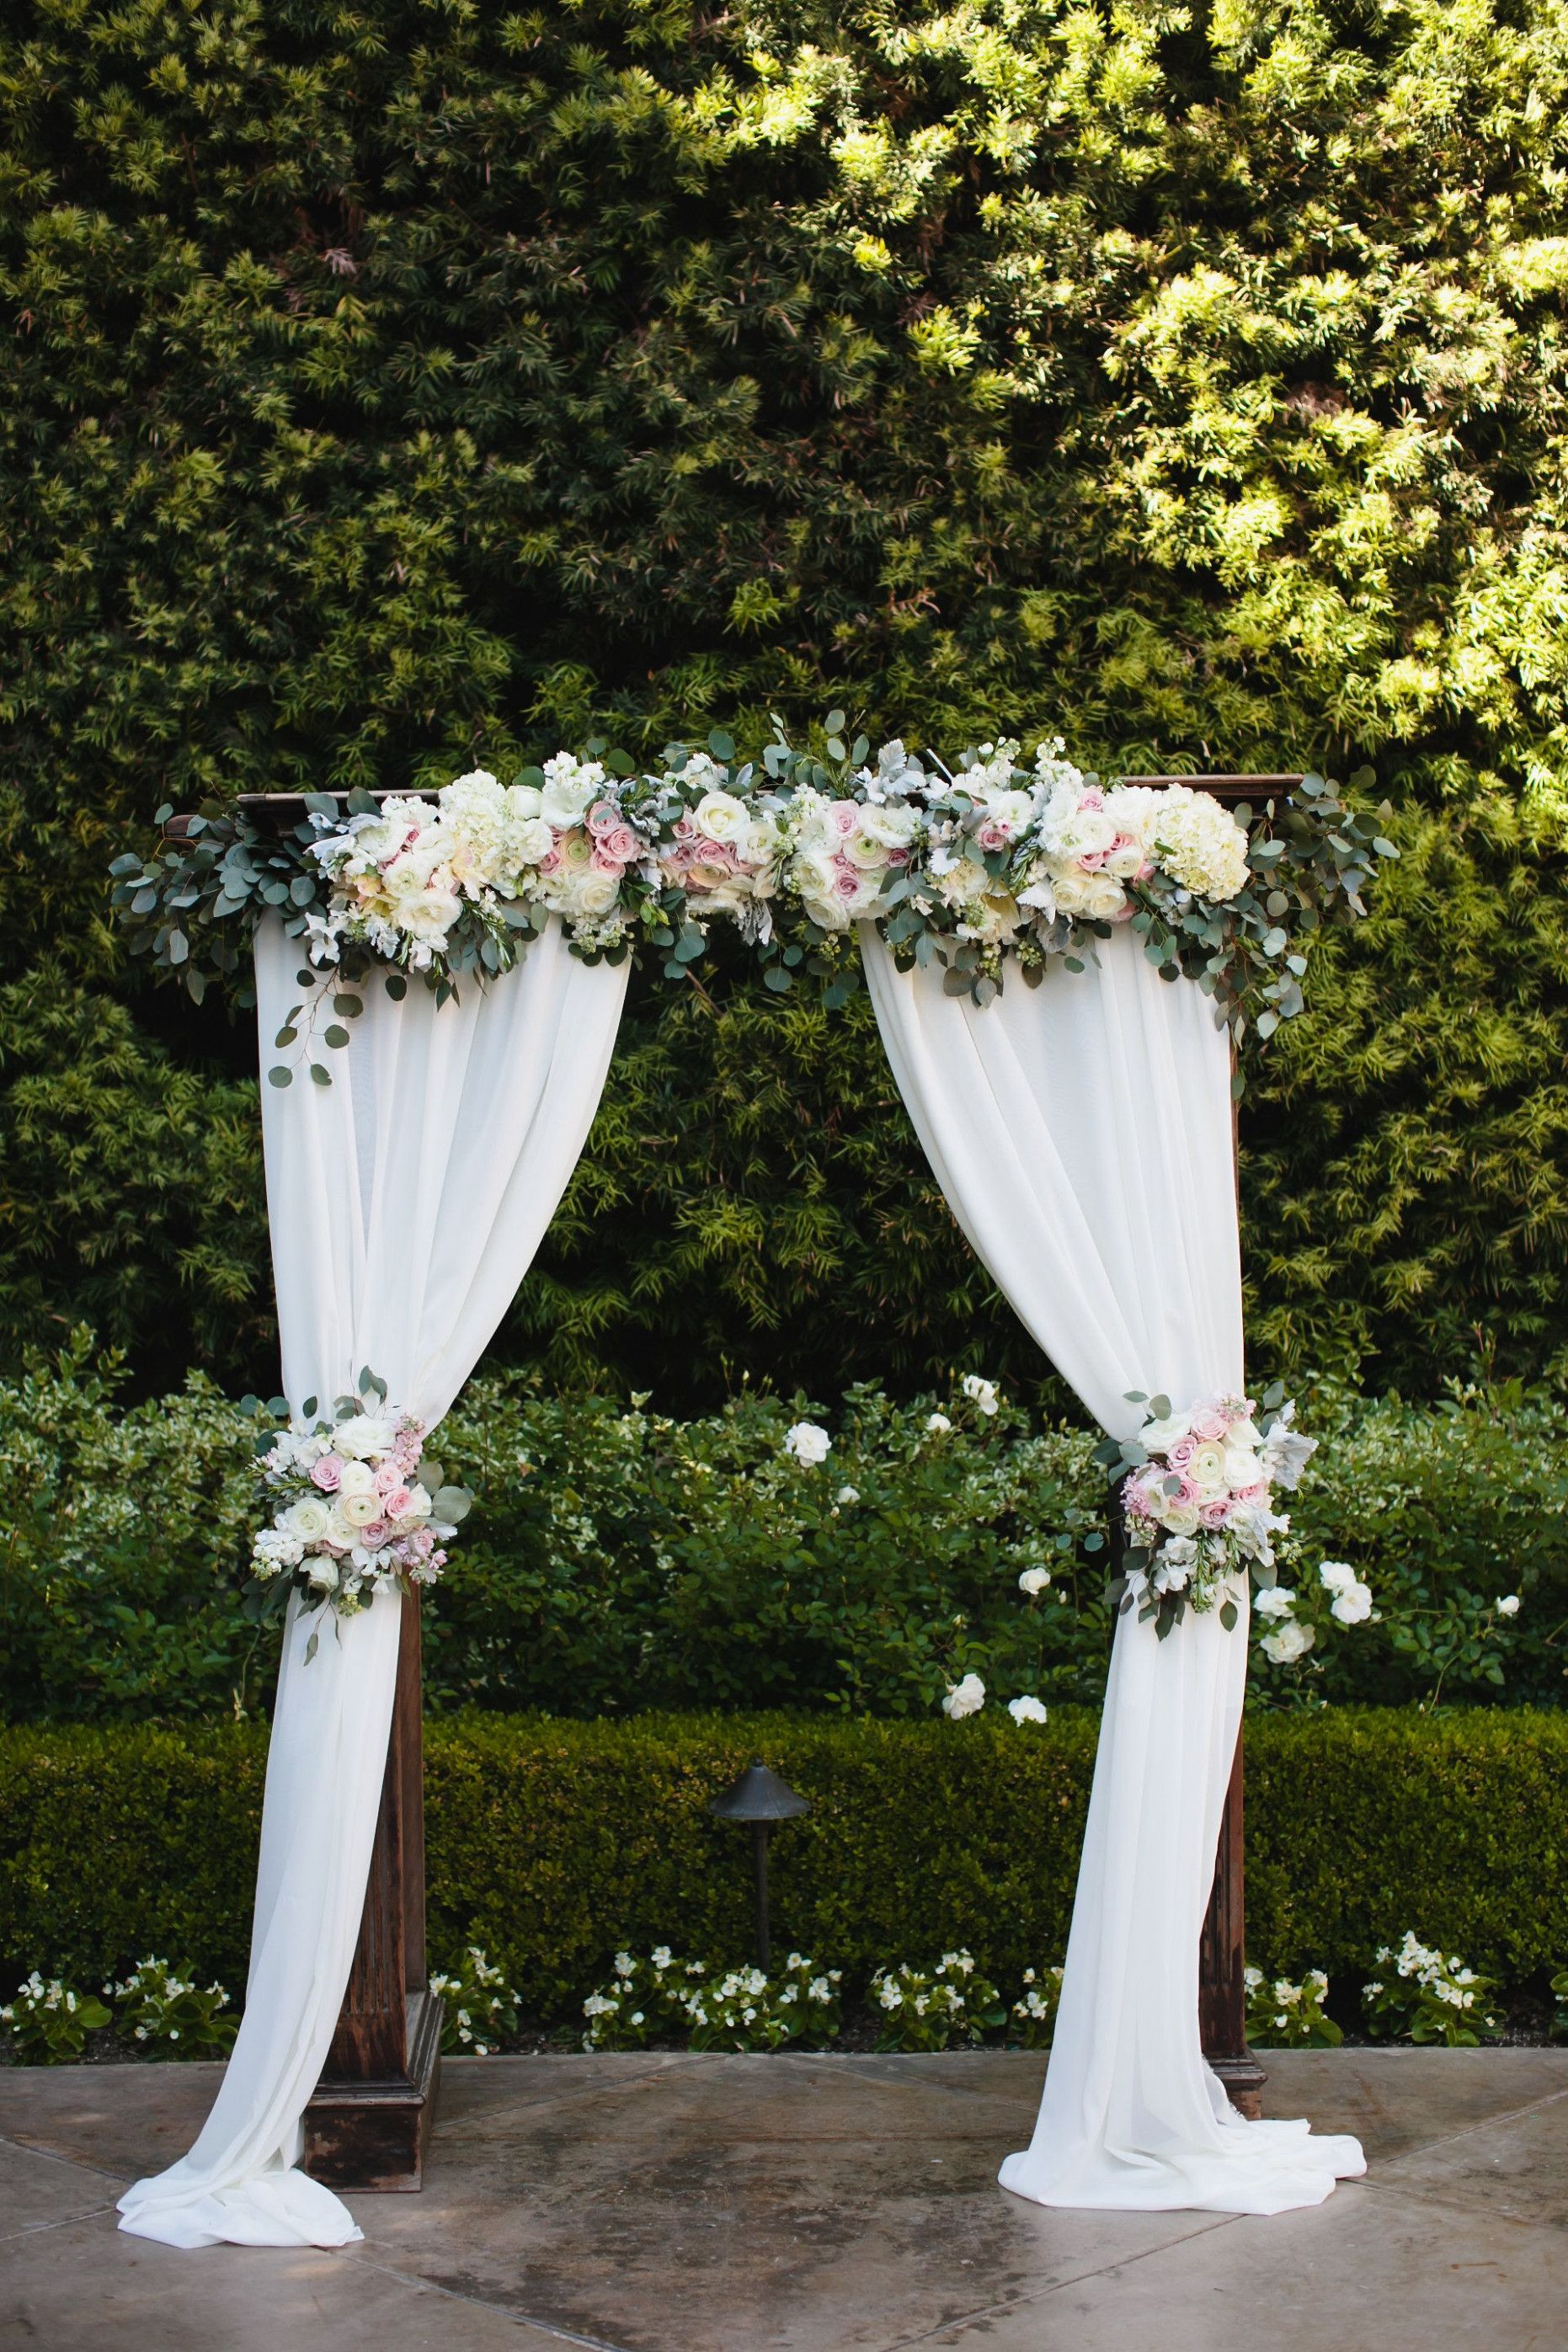 Blush and white wedding arch at Franciscan Gardens Draping fabric